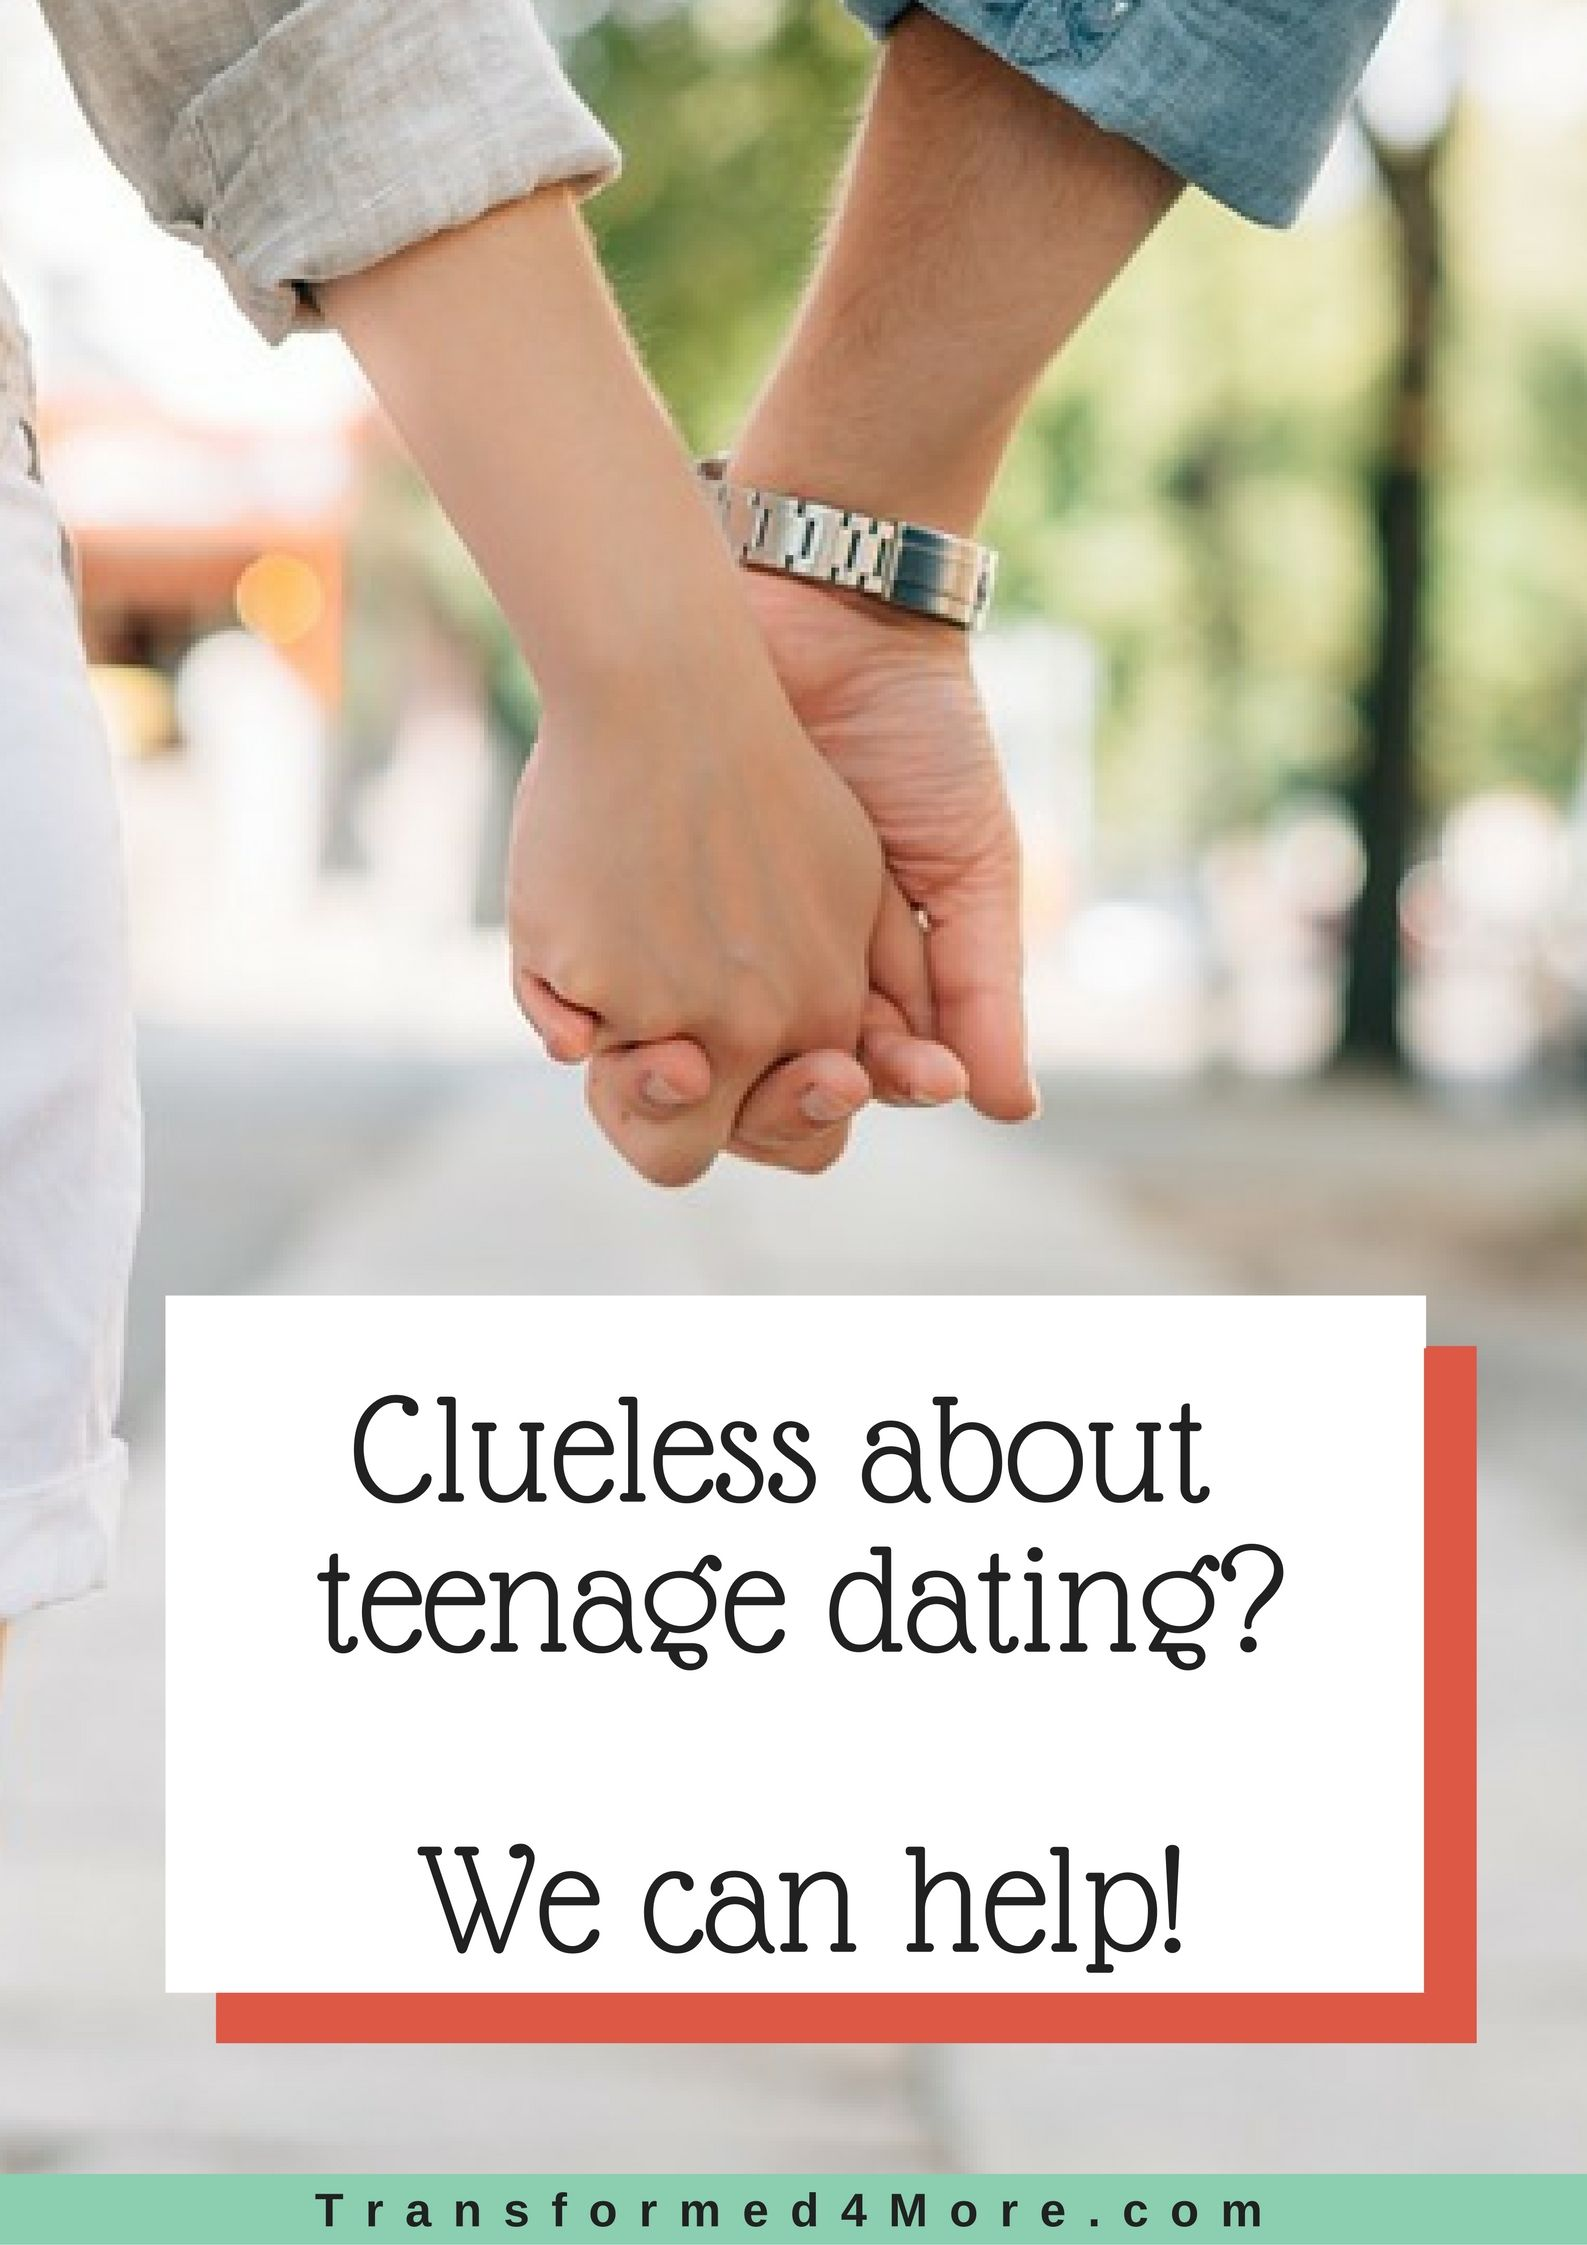 Teenage dating and mroe